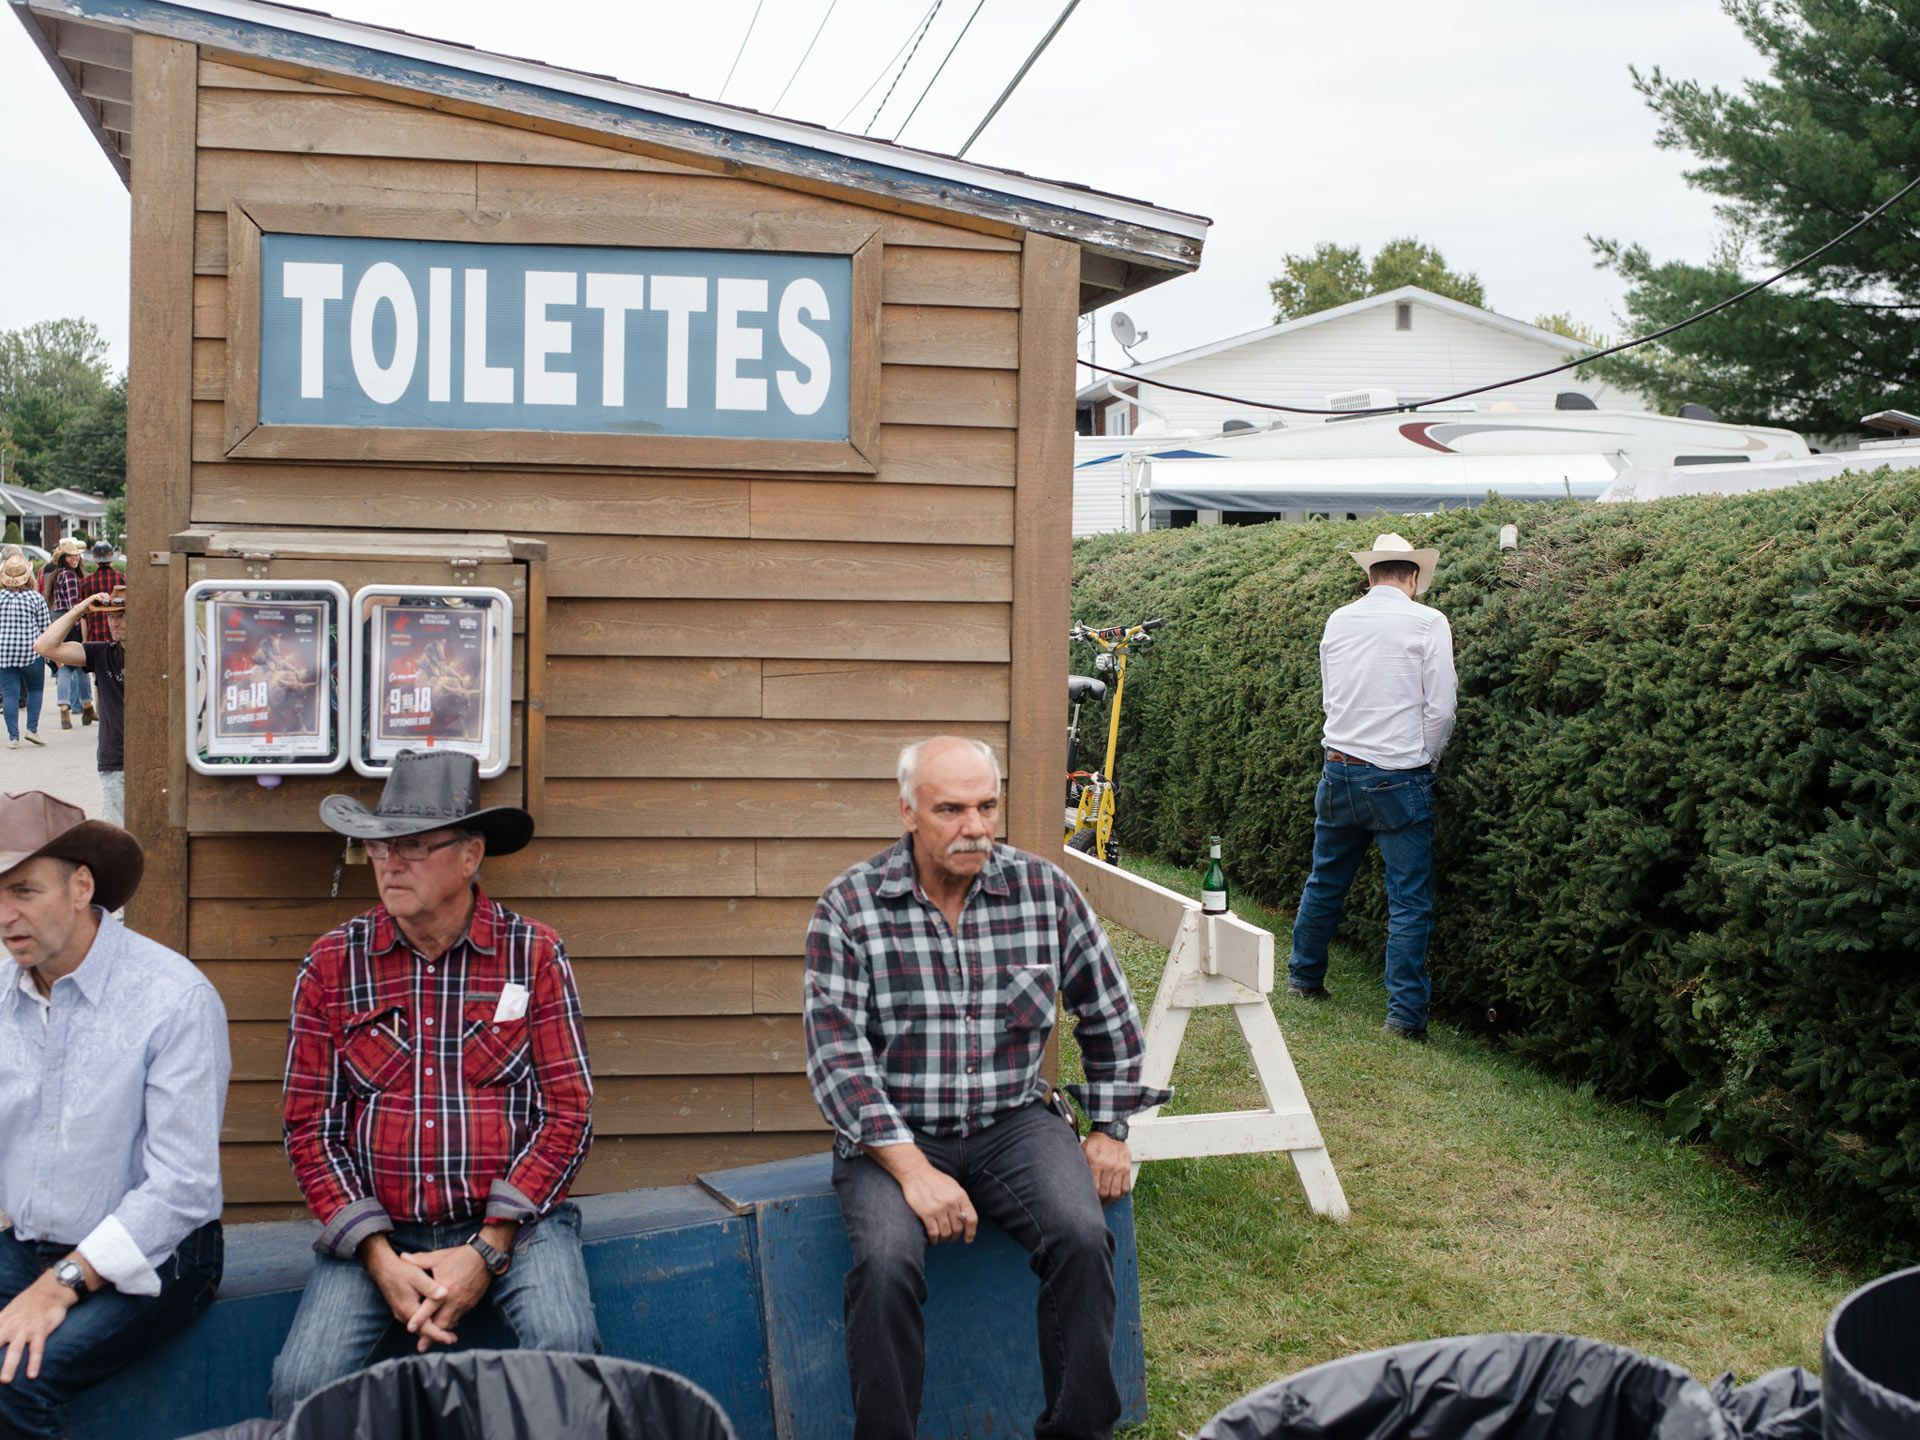 toilet shack with man peeing in the bushes next to it by Alexi Hobbs for Larose Paris in St-Tite